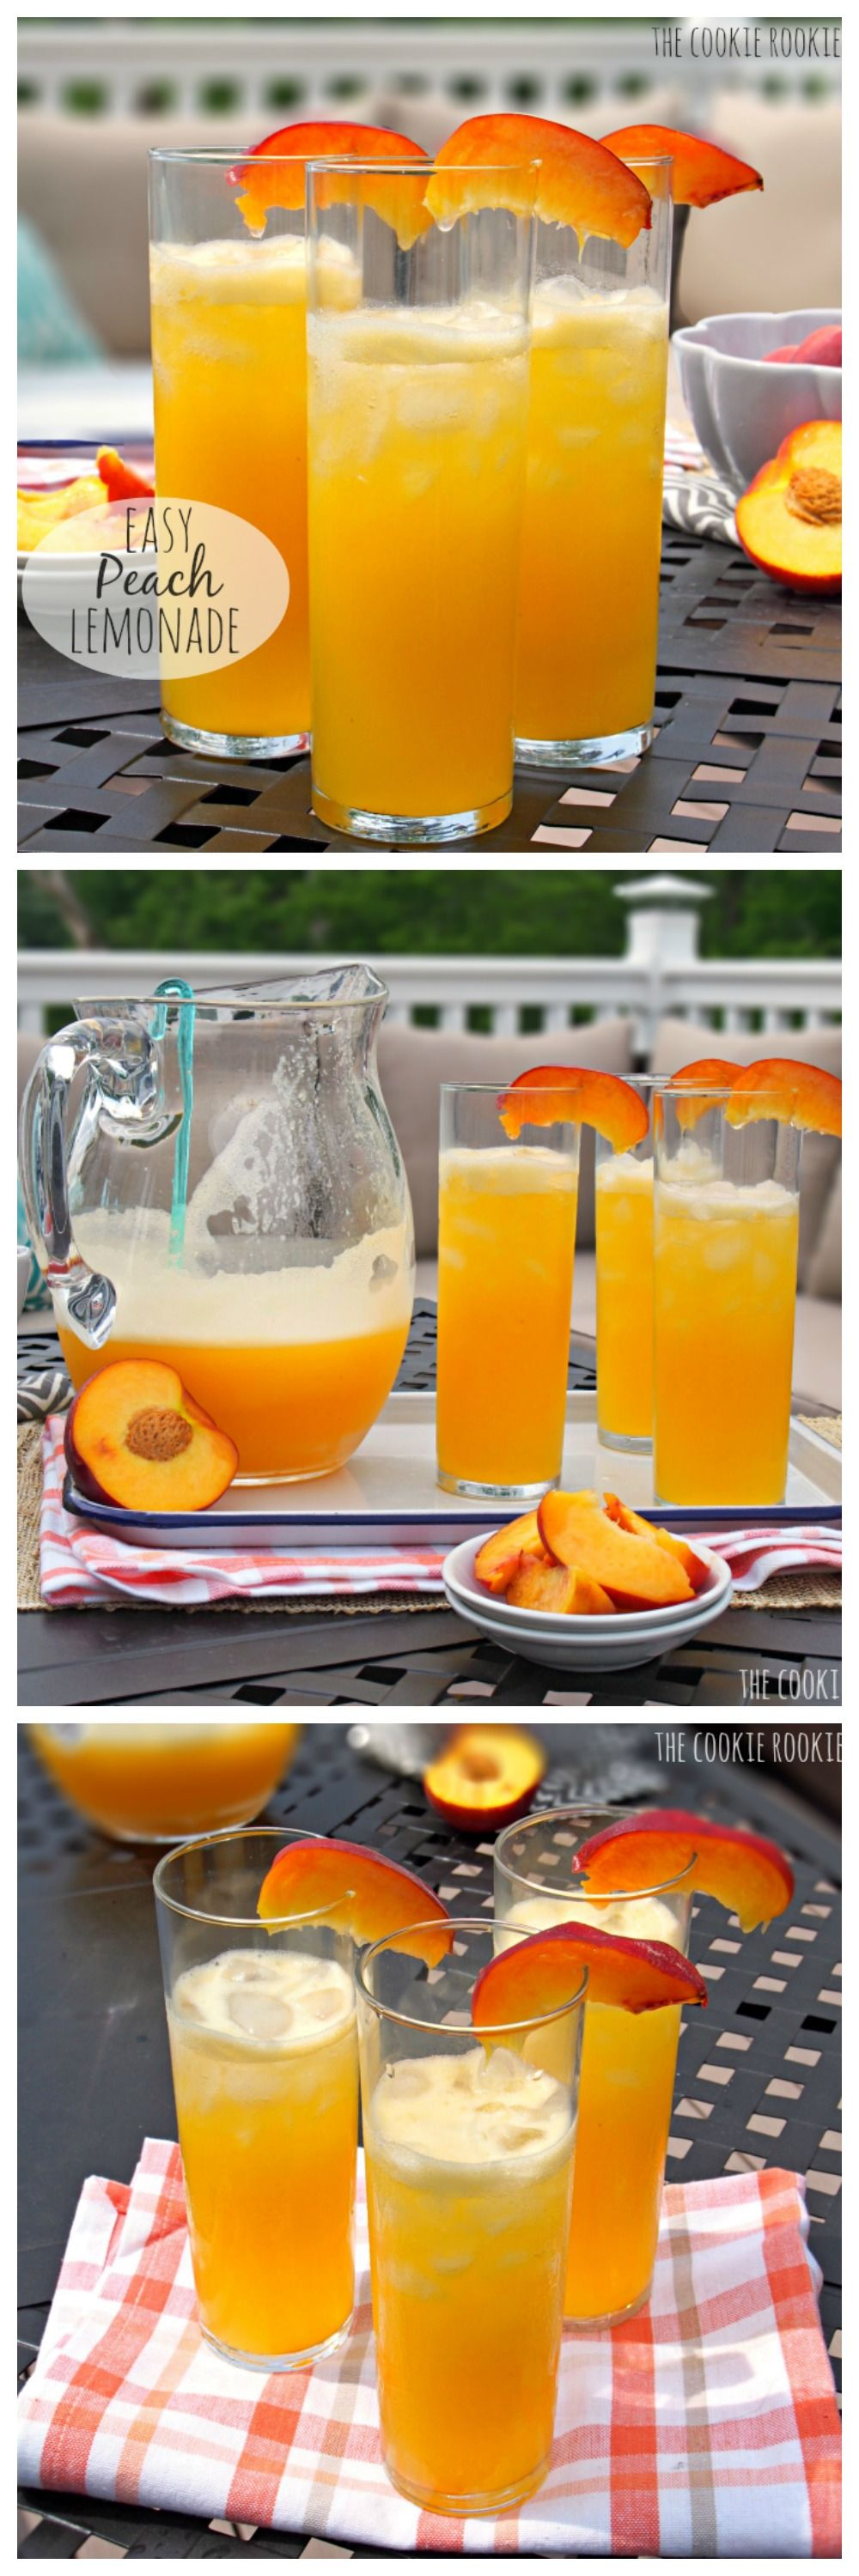 Peach Lemonade - Easy Peach Drinks - Alcoholic or Mocktail (VIDEO)